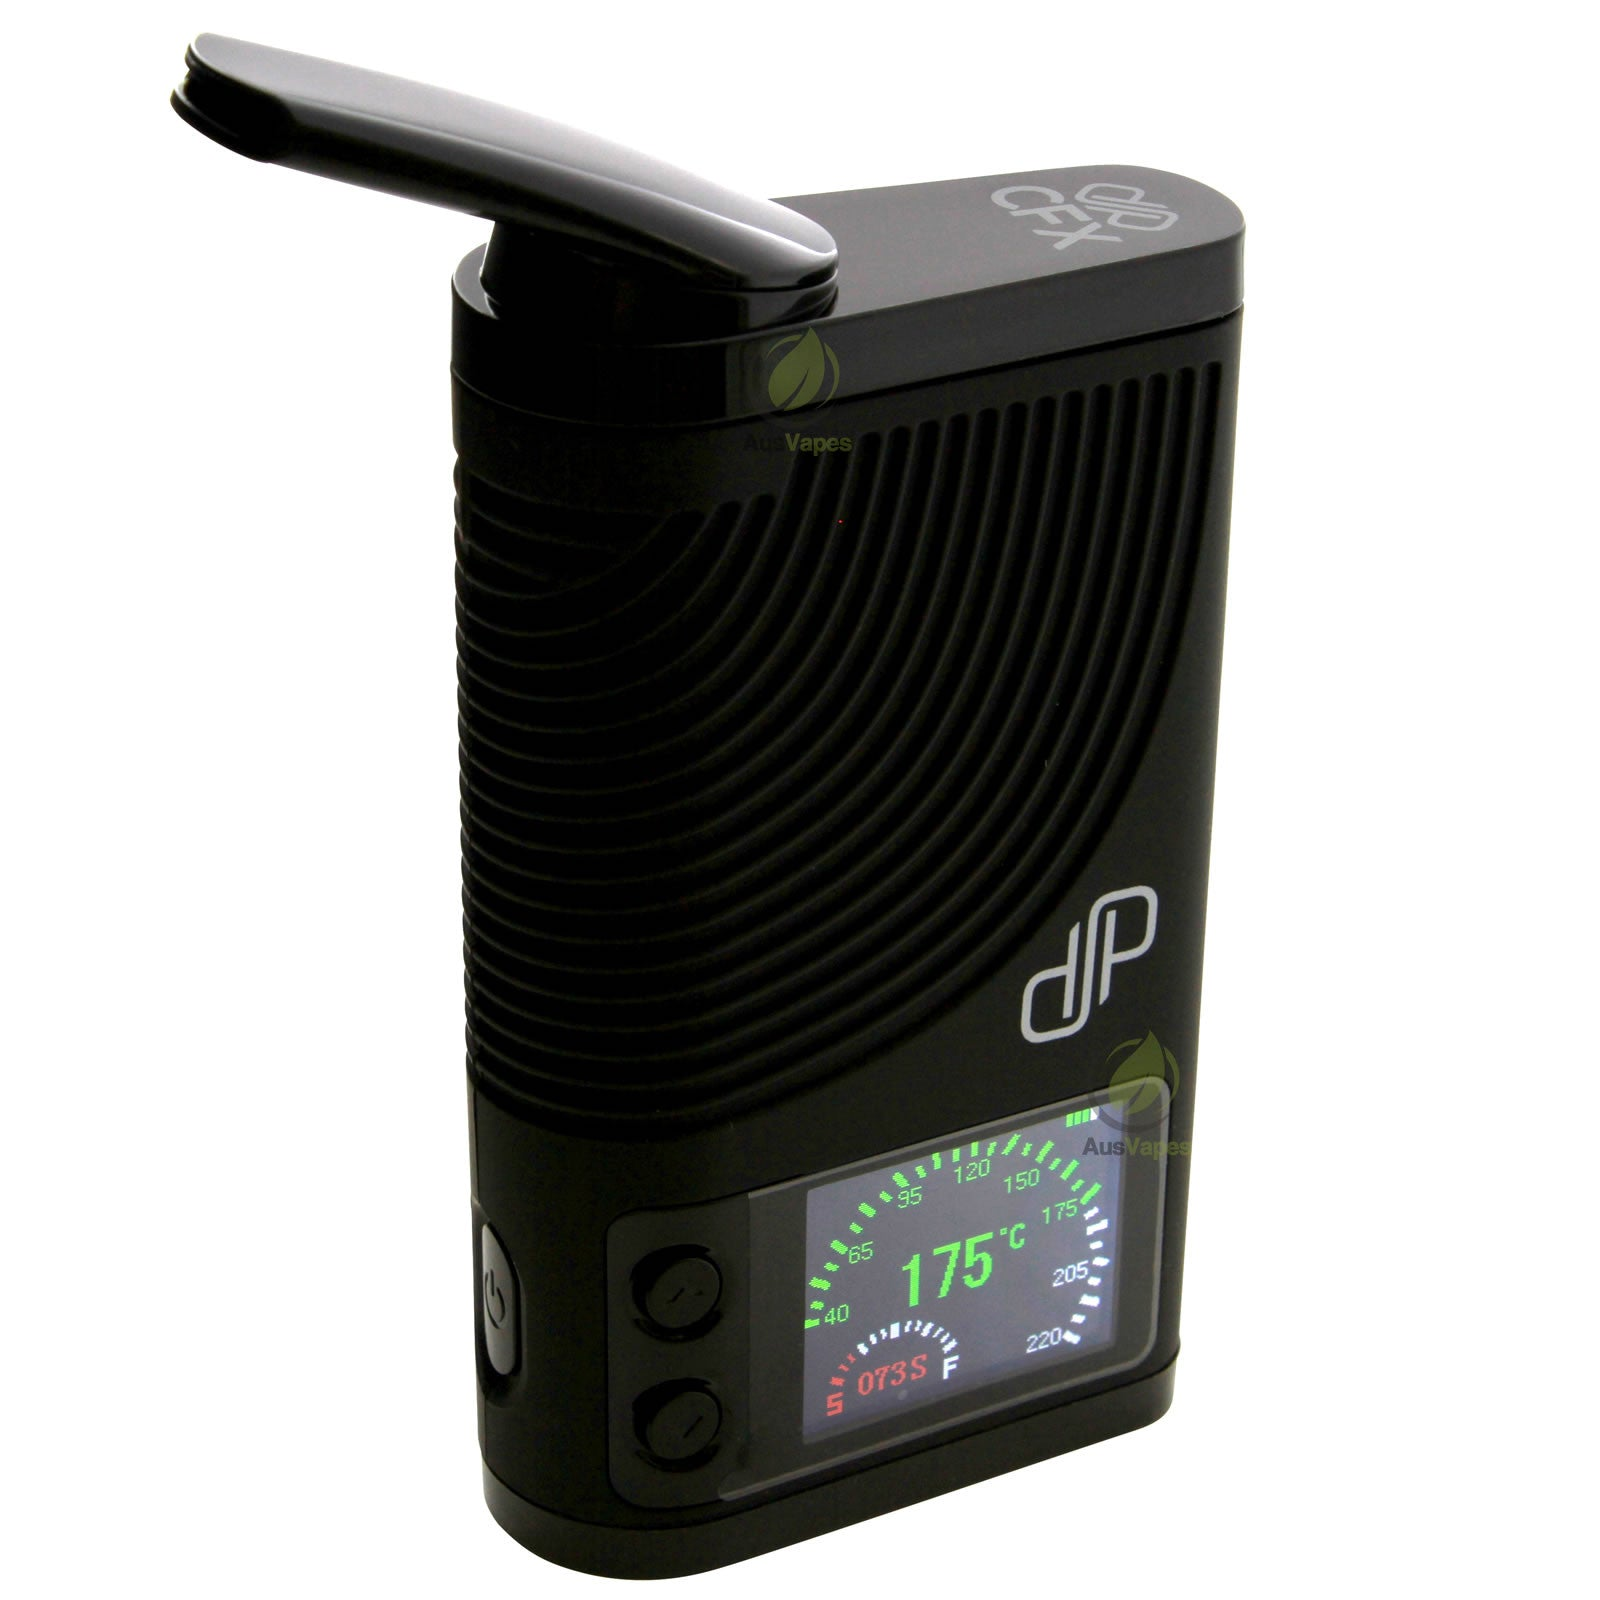 Boundless CFX Vaporizer front view